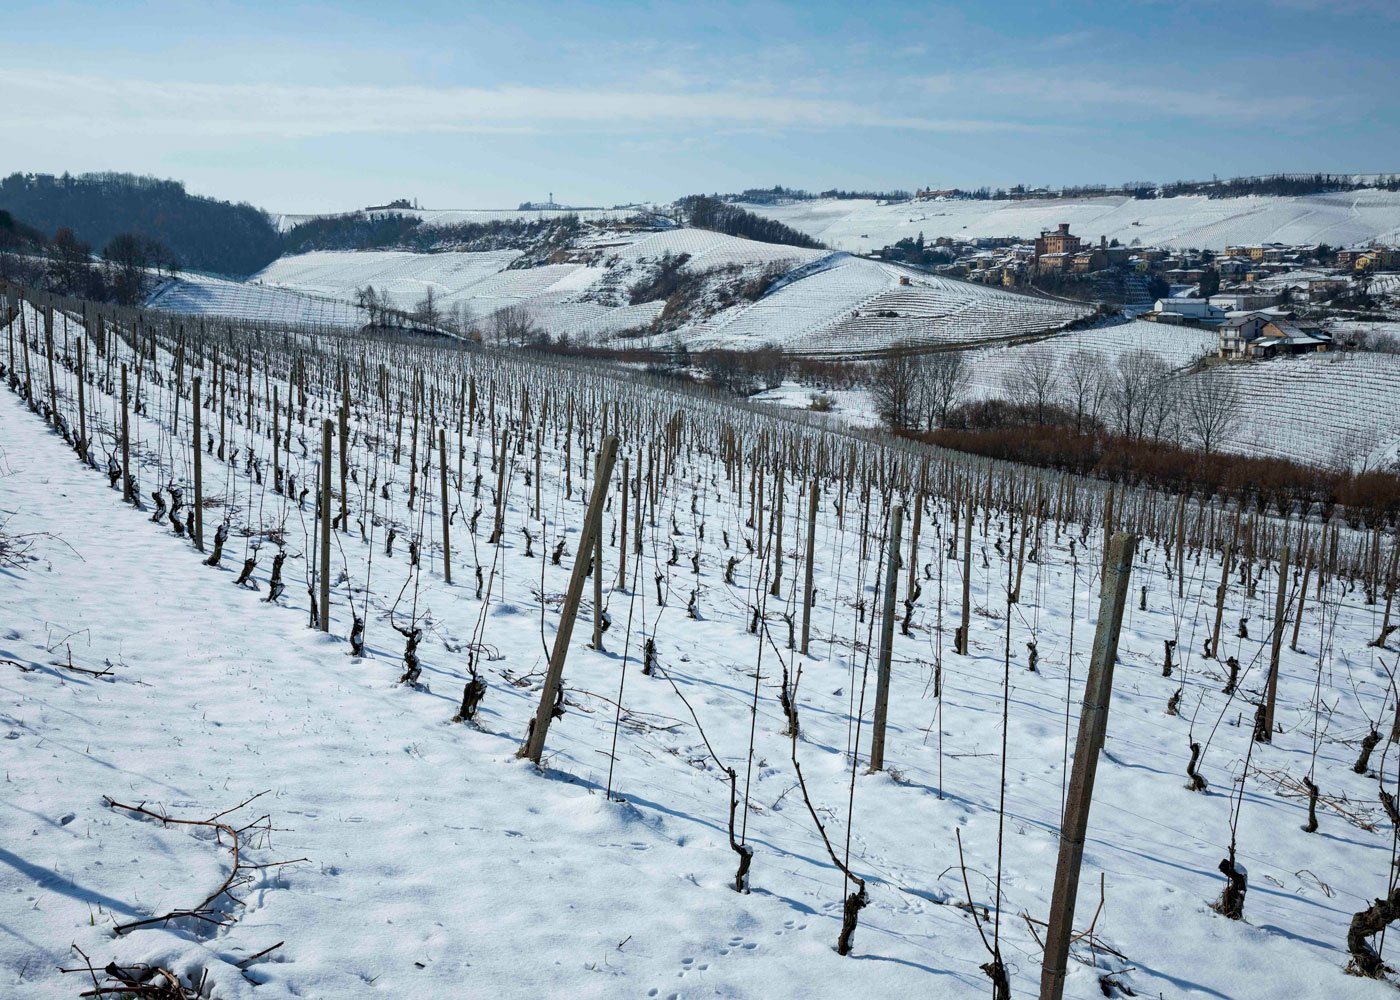 The Nebbiolo vineyards in winter: Vignane